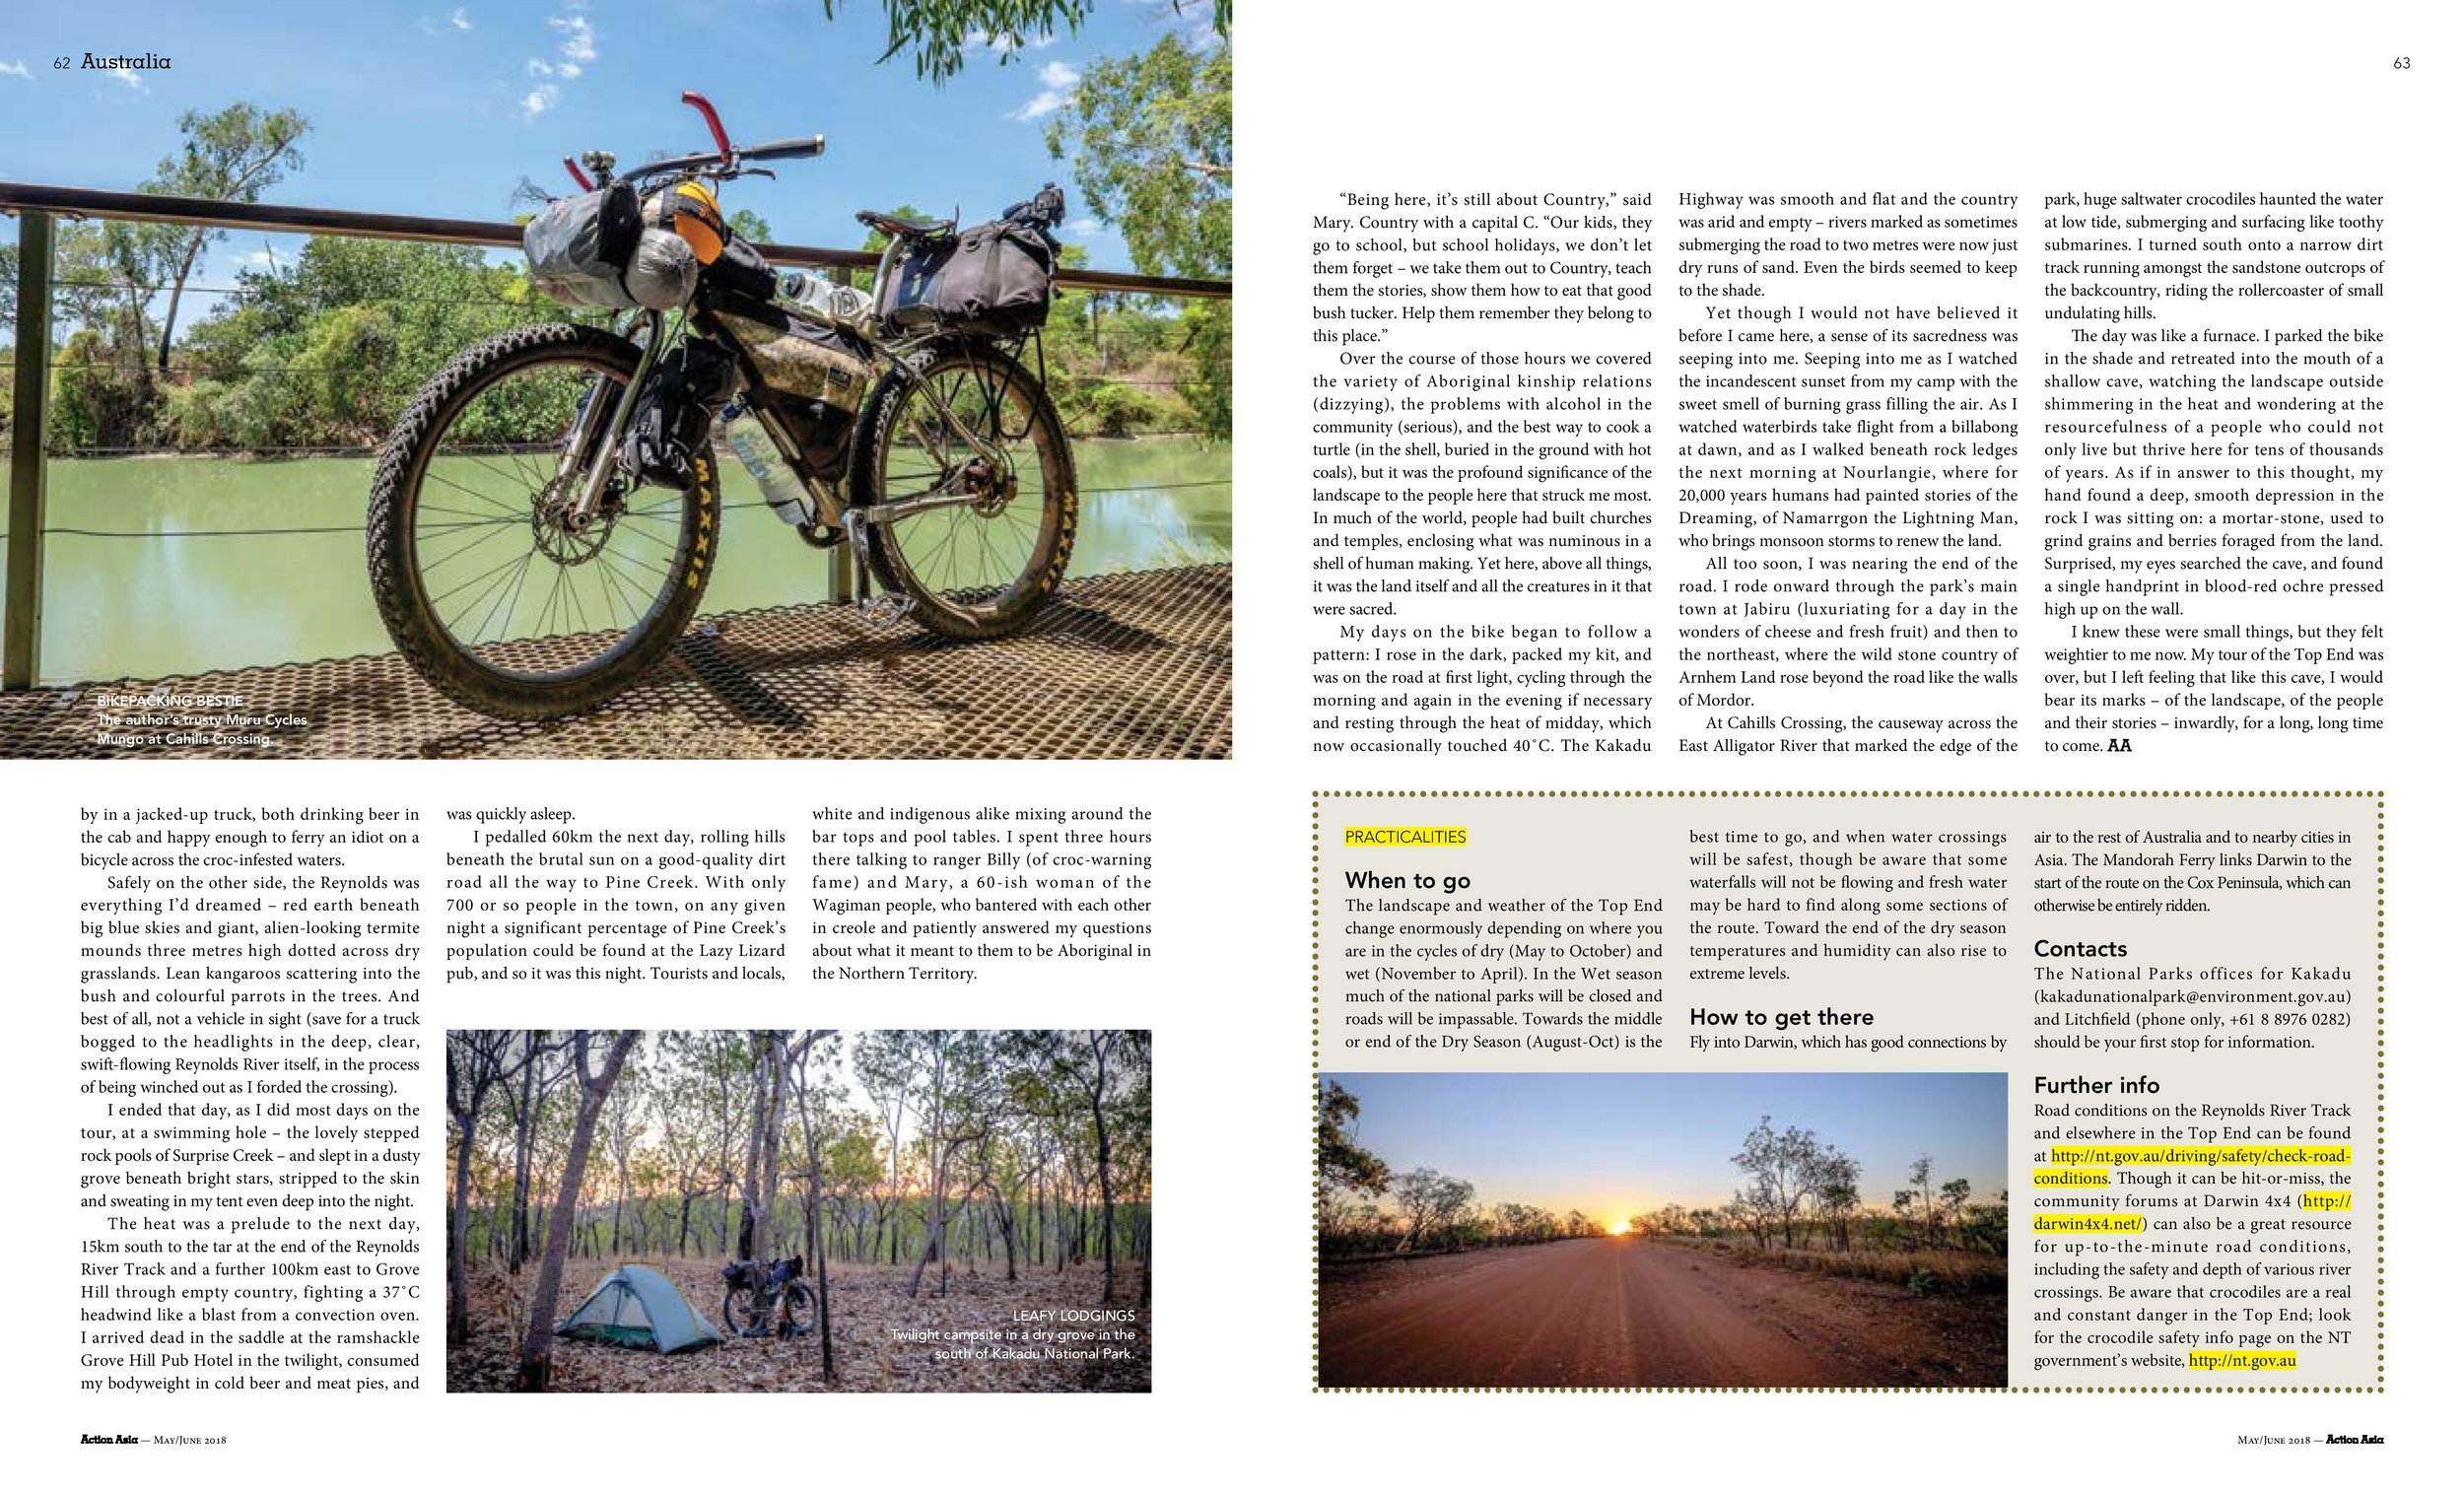 058-063 Feature 4 - Aus biking_May18-page-003.jpg